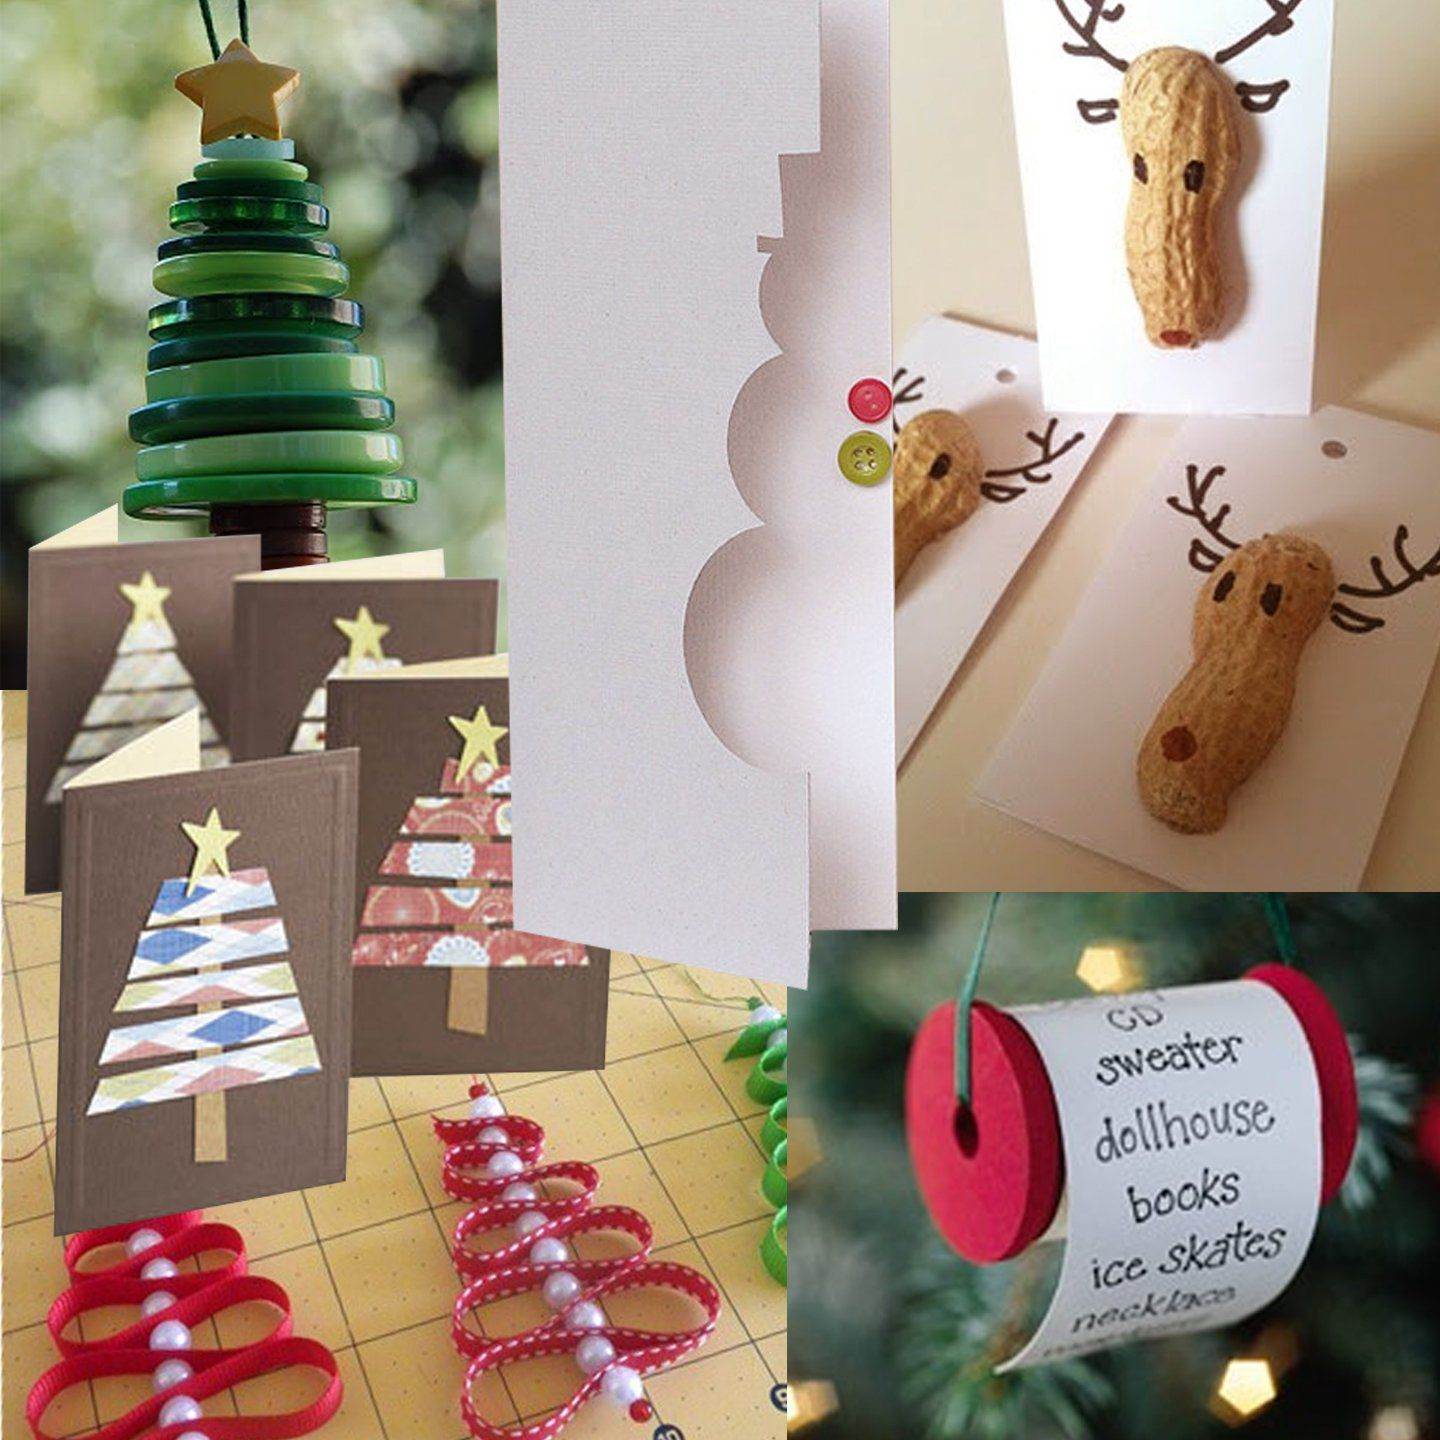 Christmas Room Ideas Diy Decorations | xmas decorations homemade ...